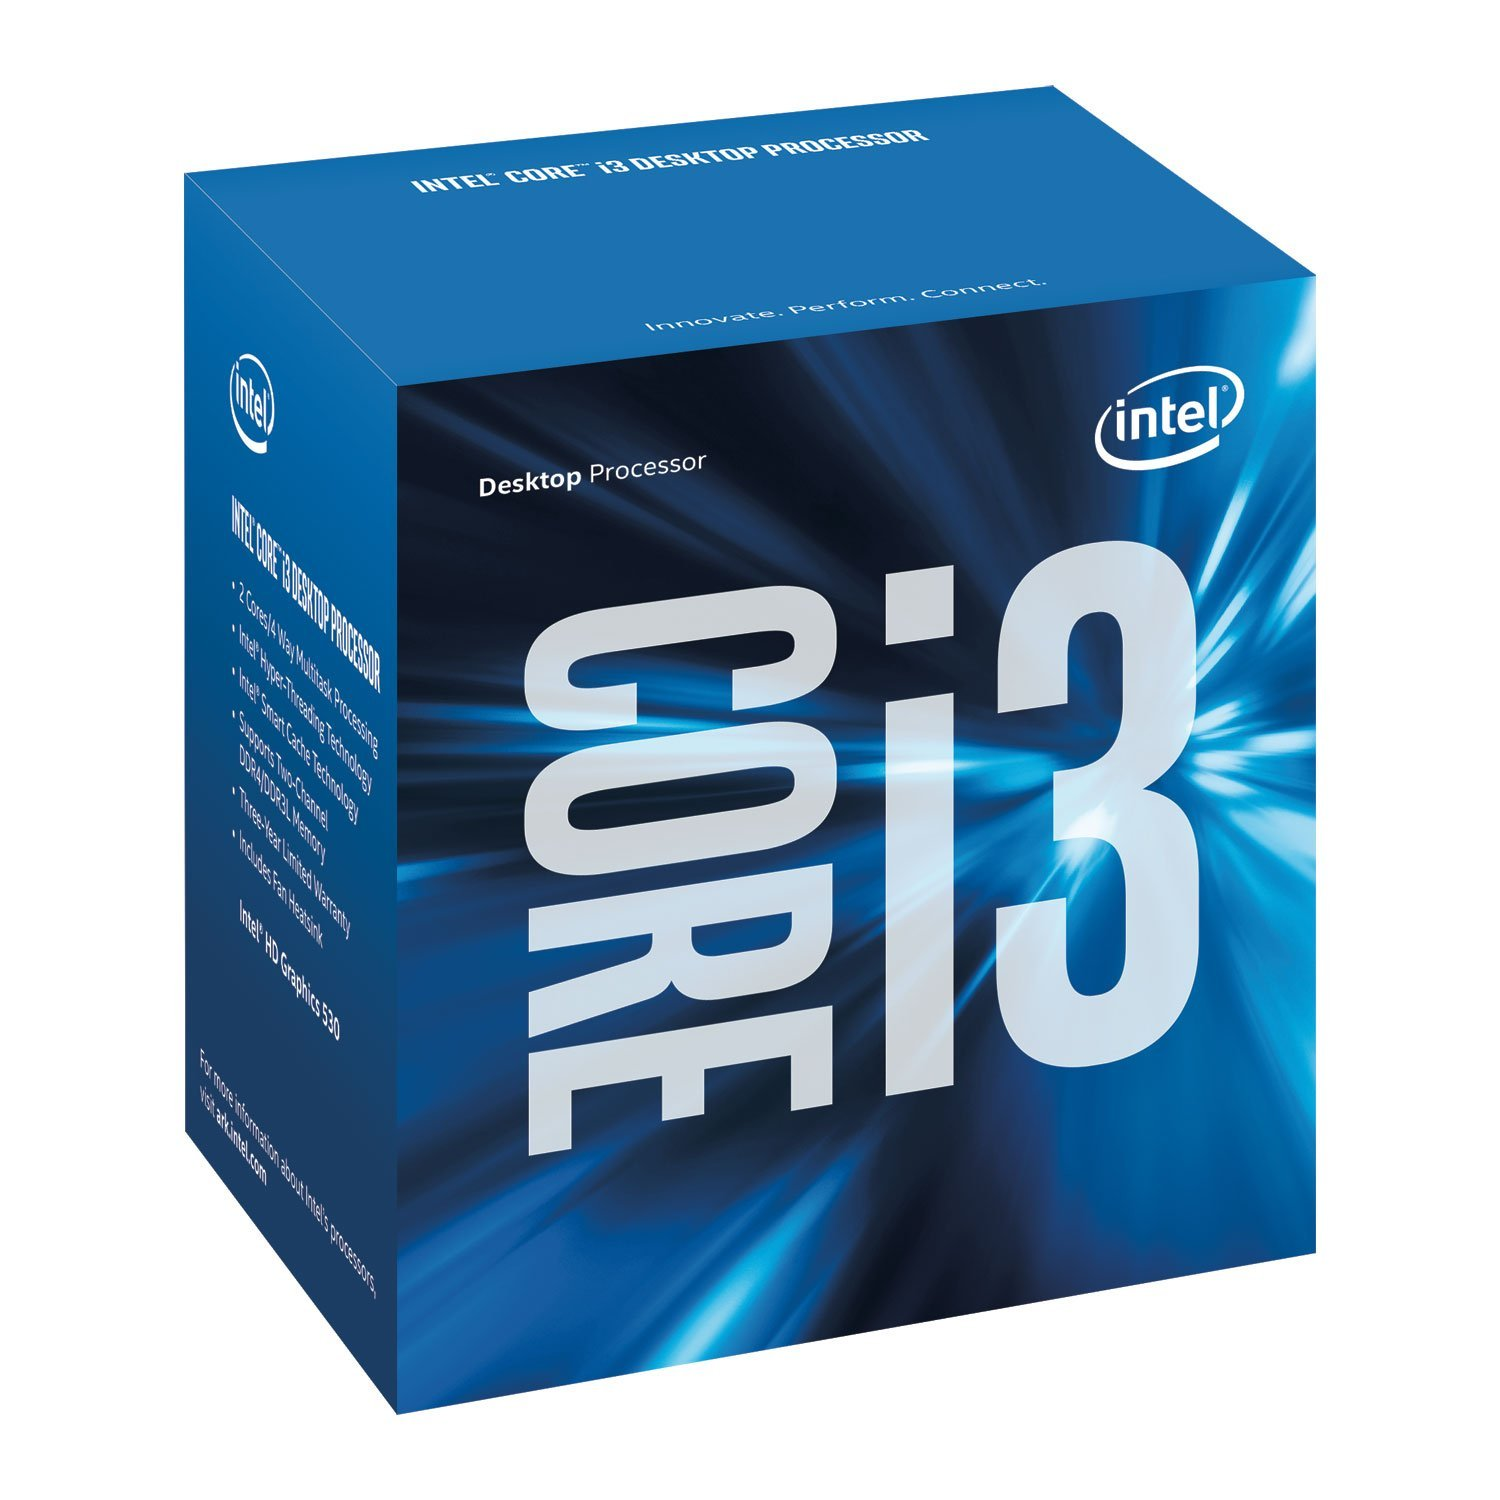 Intel 3.70 GHz Core i3-6100 3M Cache Processor (BX80662I36100) (Renewed)